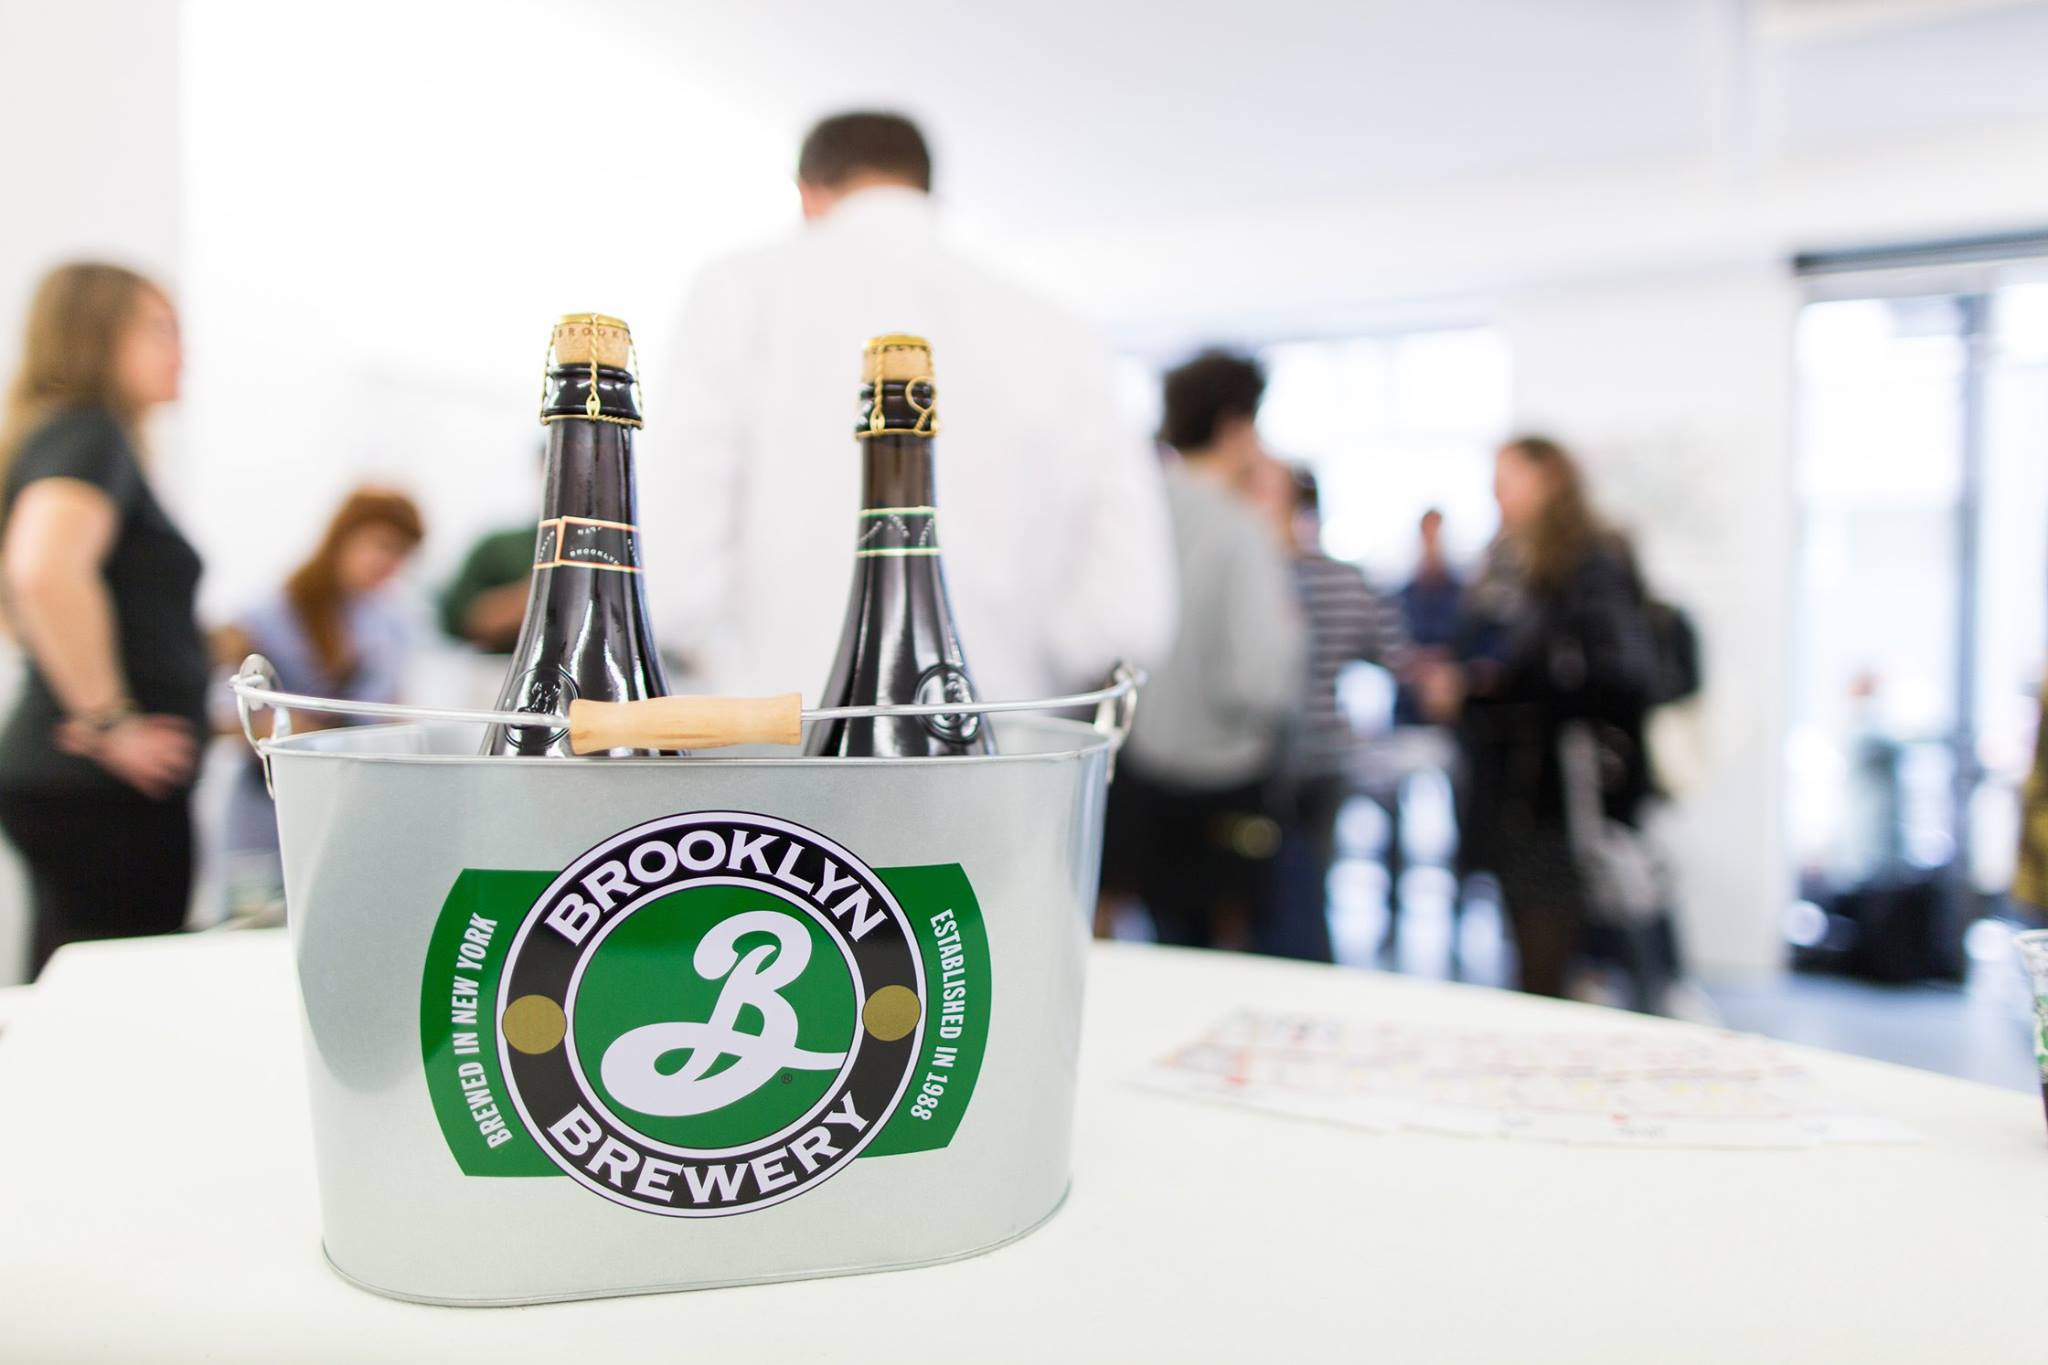 Brooklyn Brewery - Pack de bières lager